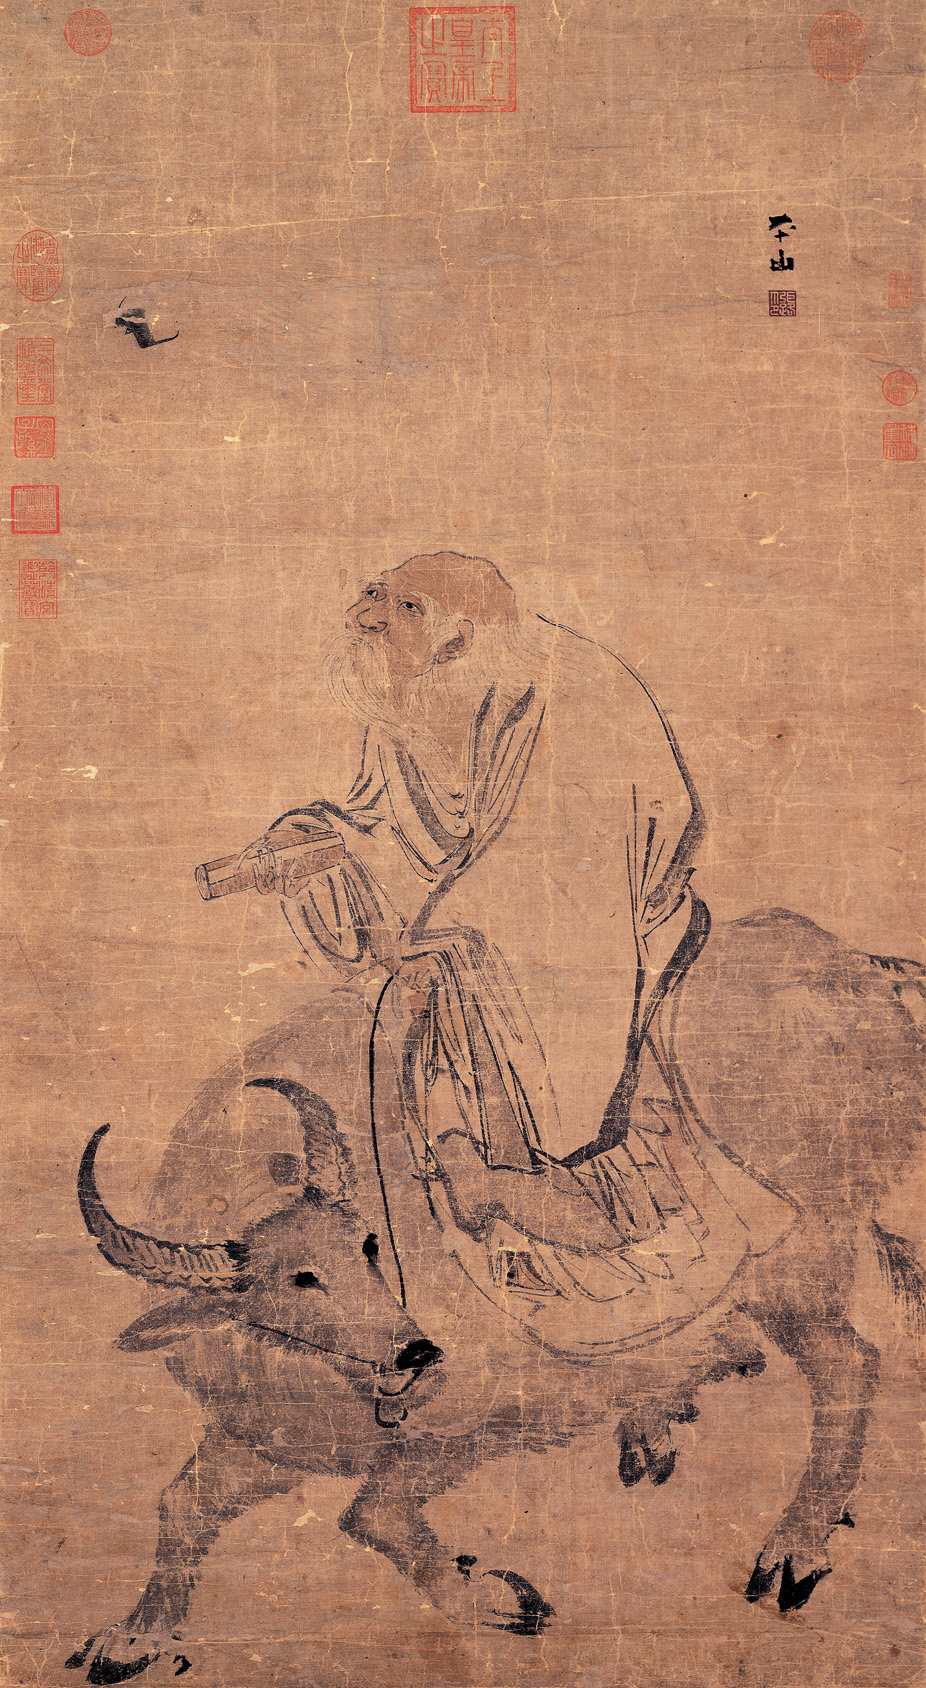 Ancient Chinese scroll of an elderly man riding an ox.